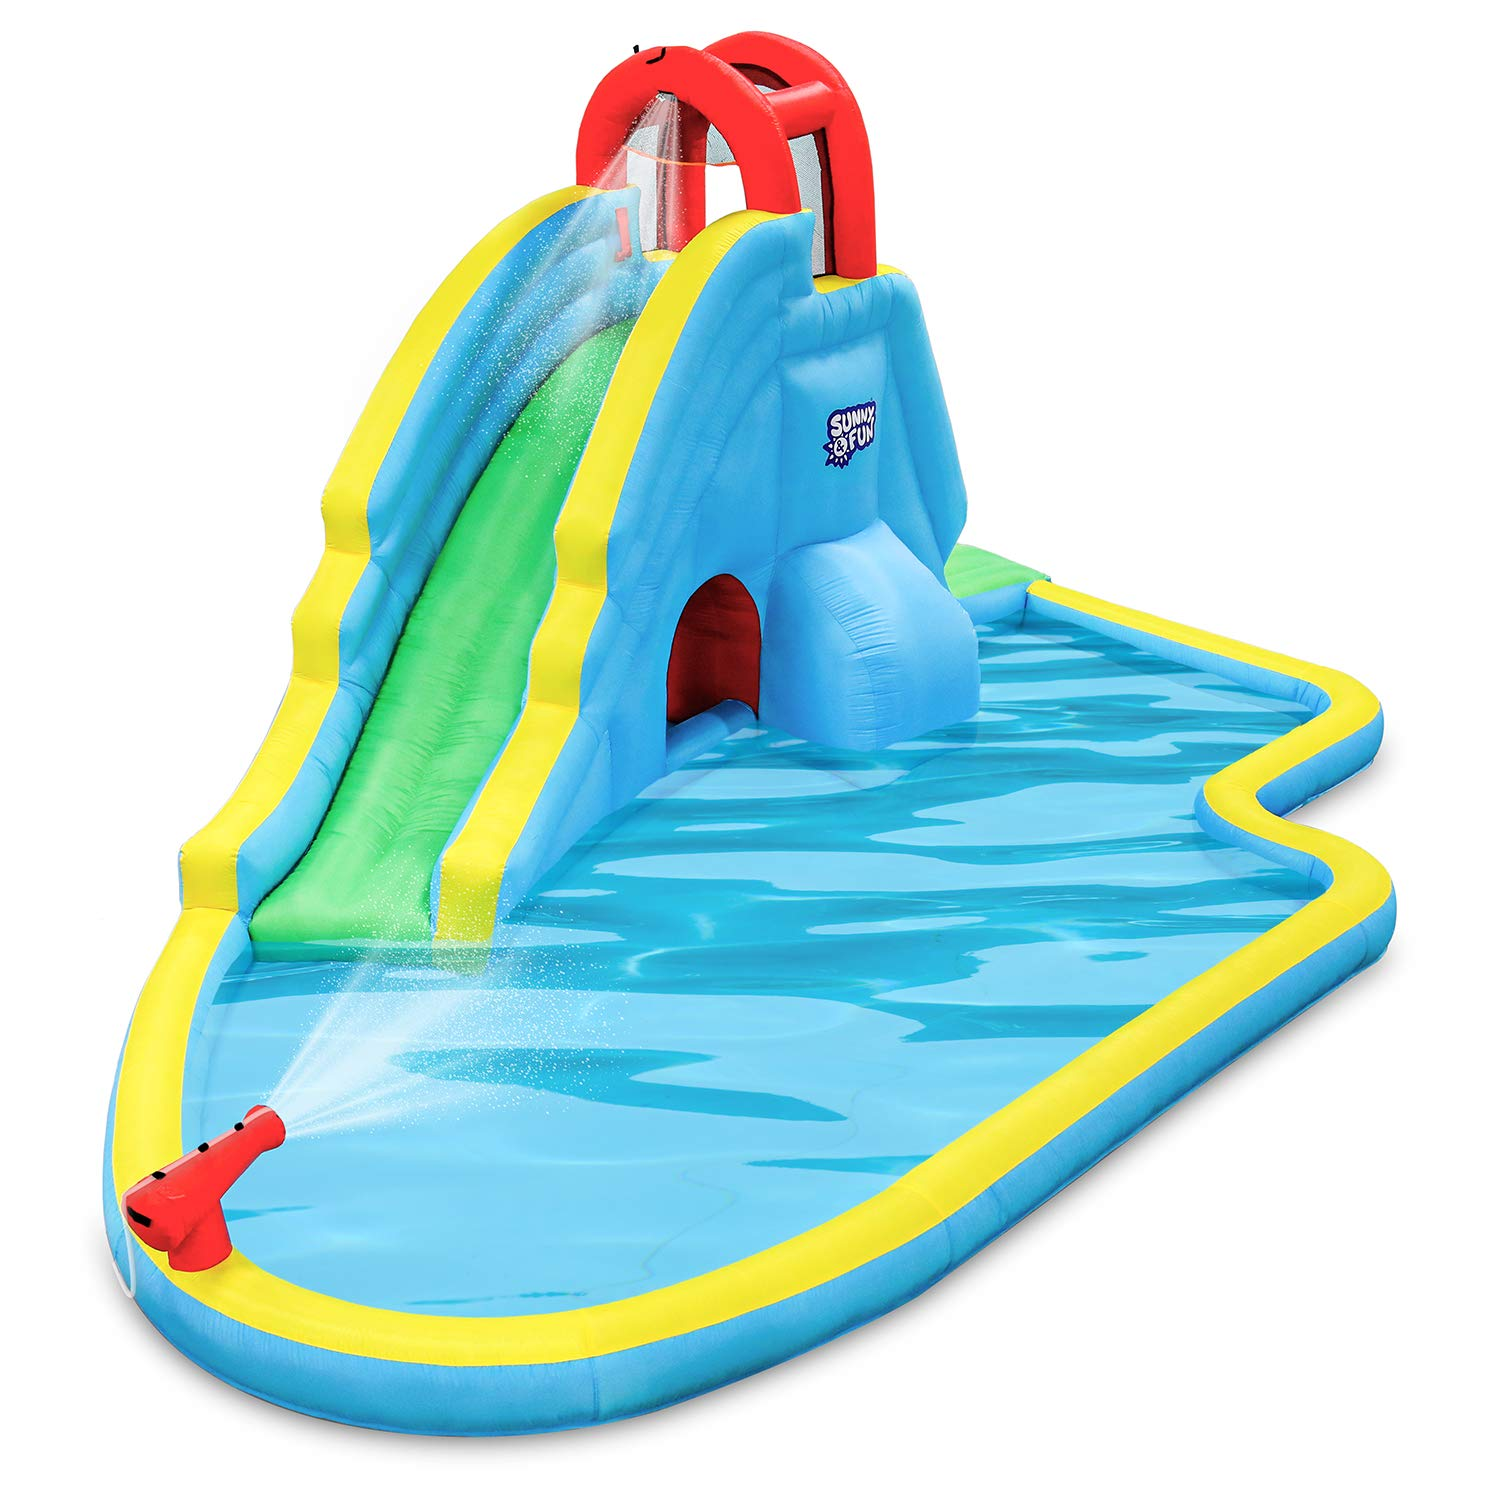 Top 7 Best Water Slide Pools Inflatable Reviews in 2021 8